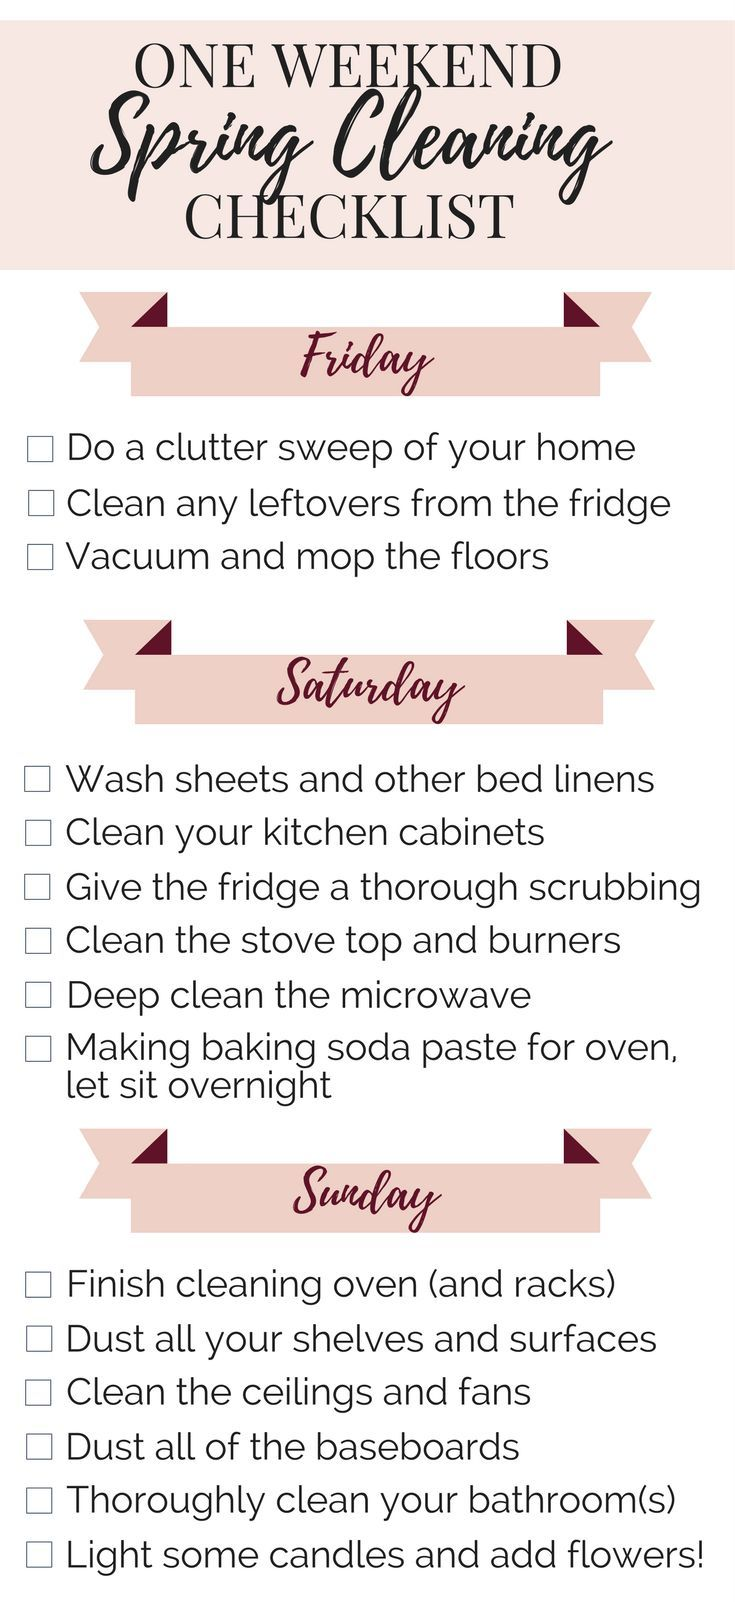 How To Spring Clean Your House The Lazy Way In A Weekend Quick